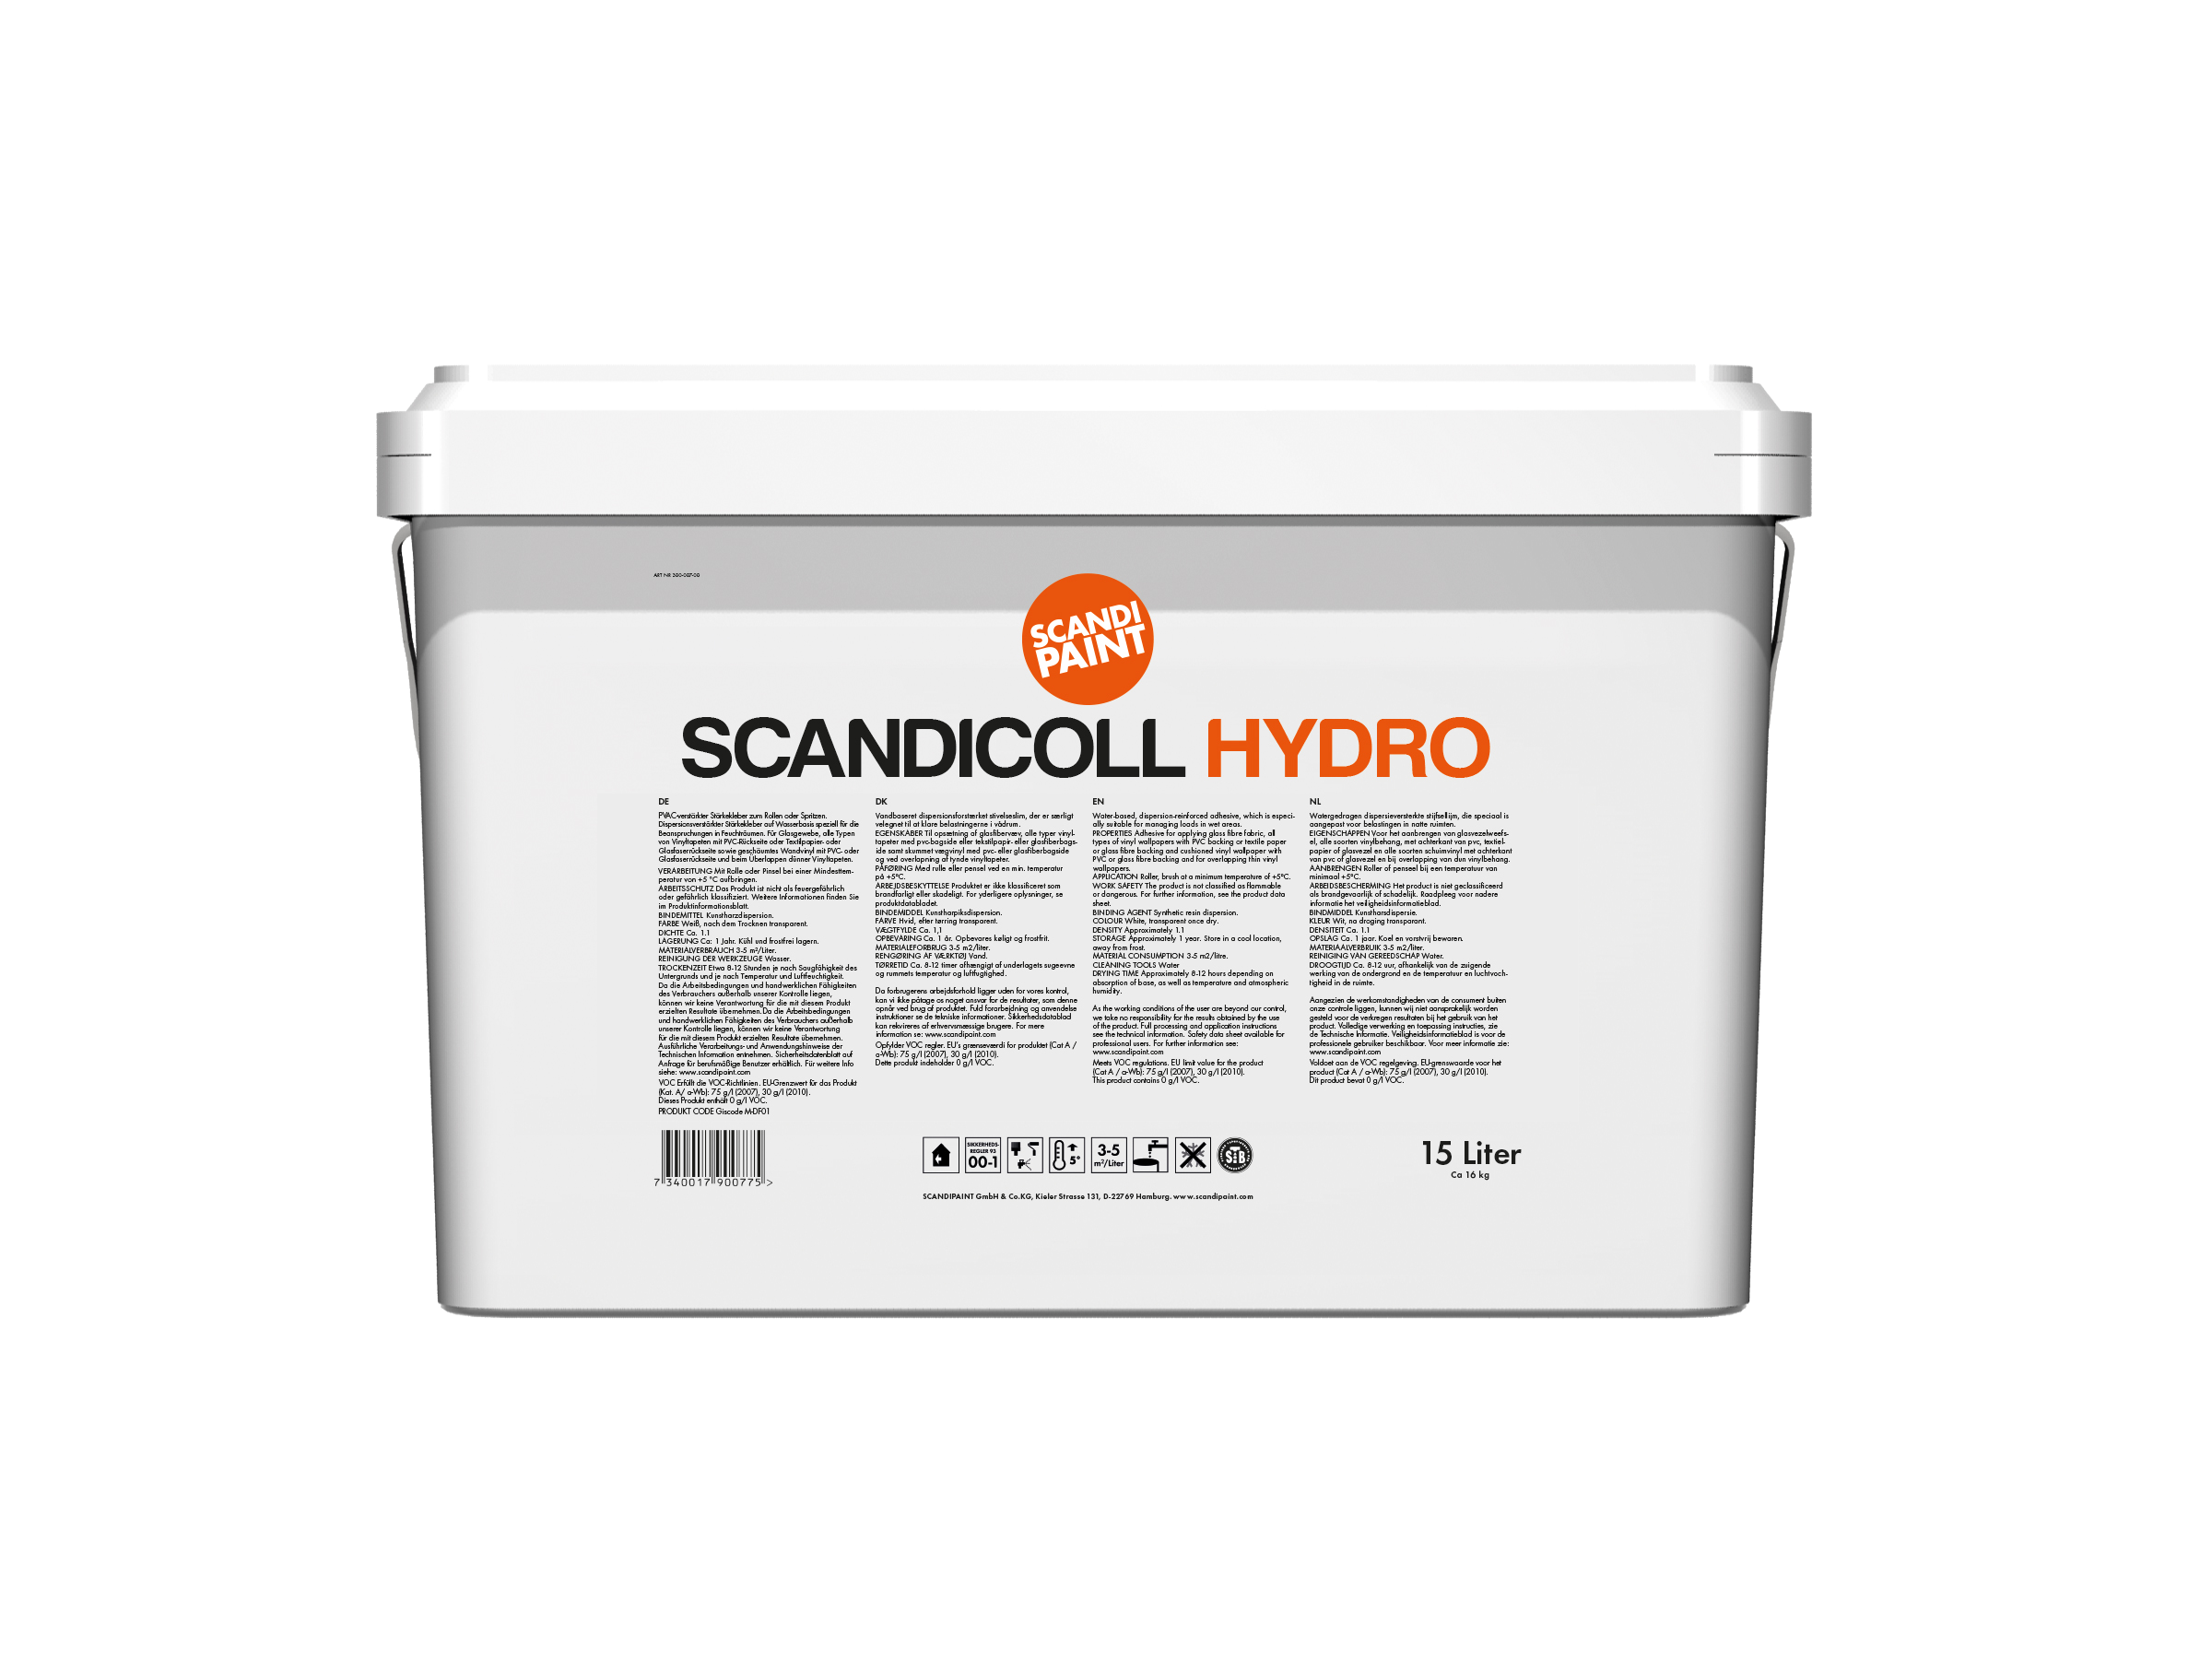 SCANDICOLL HYDRO